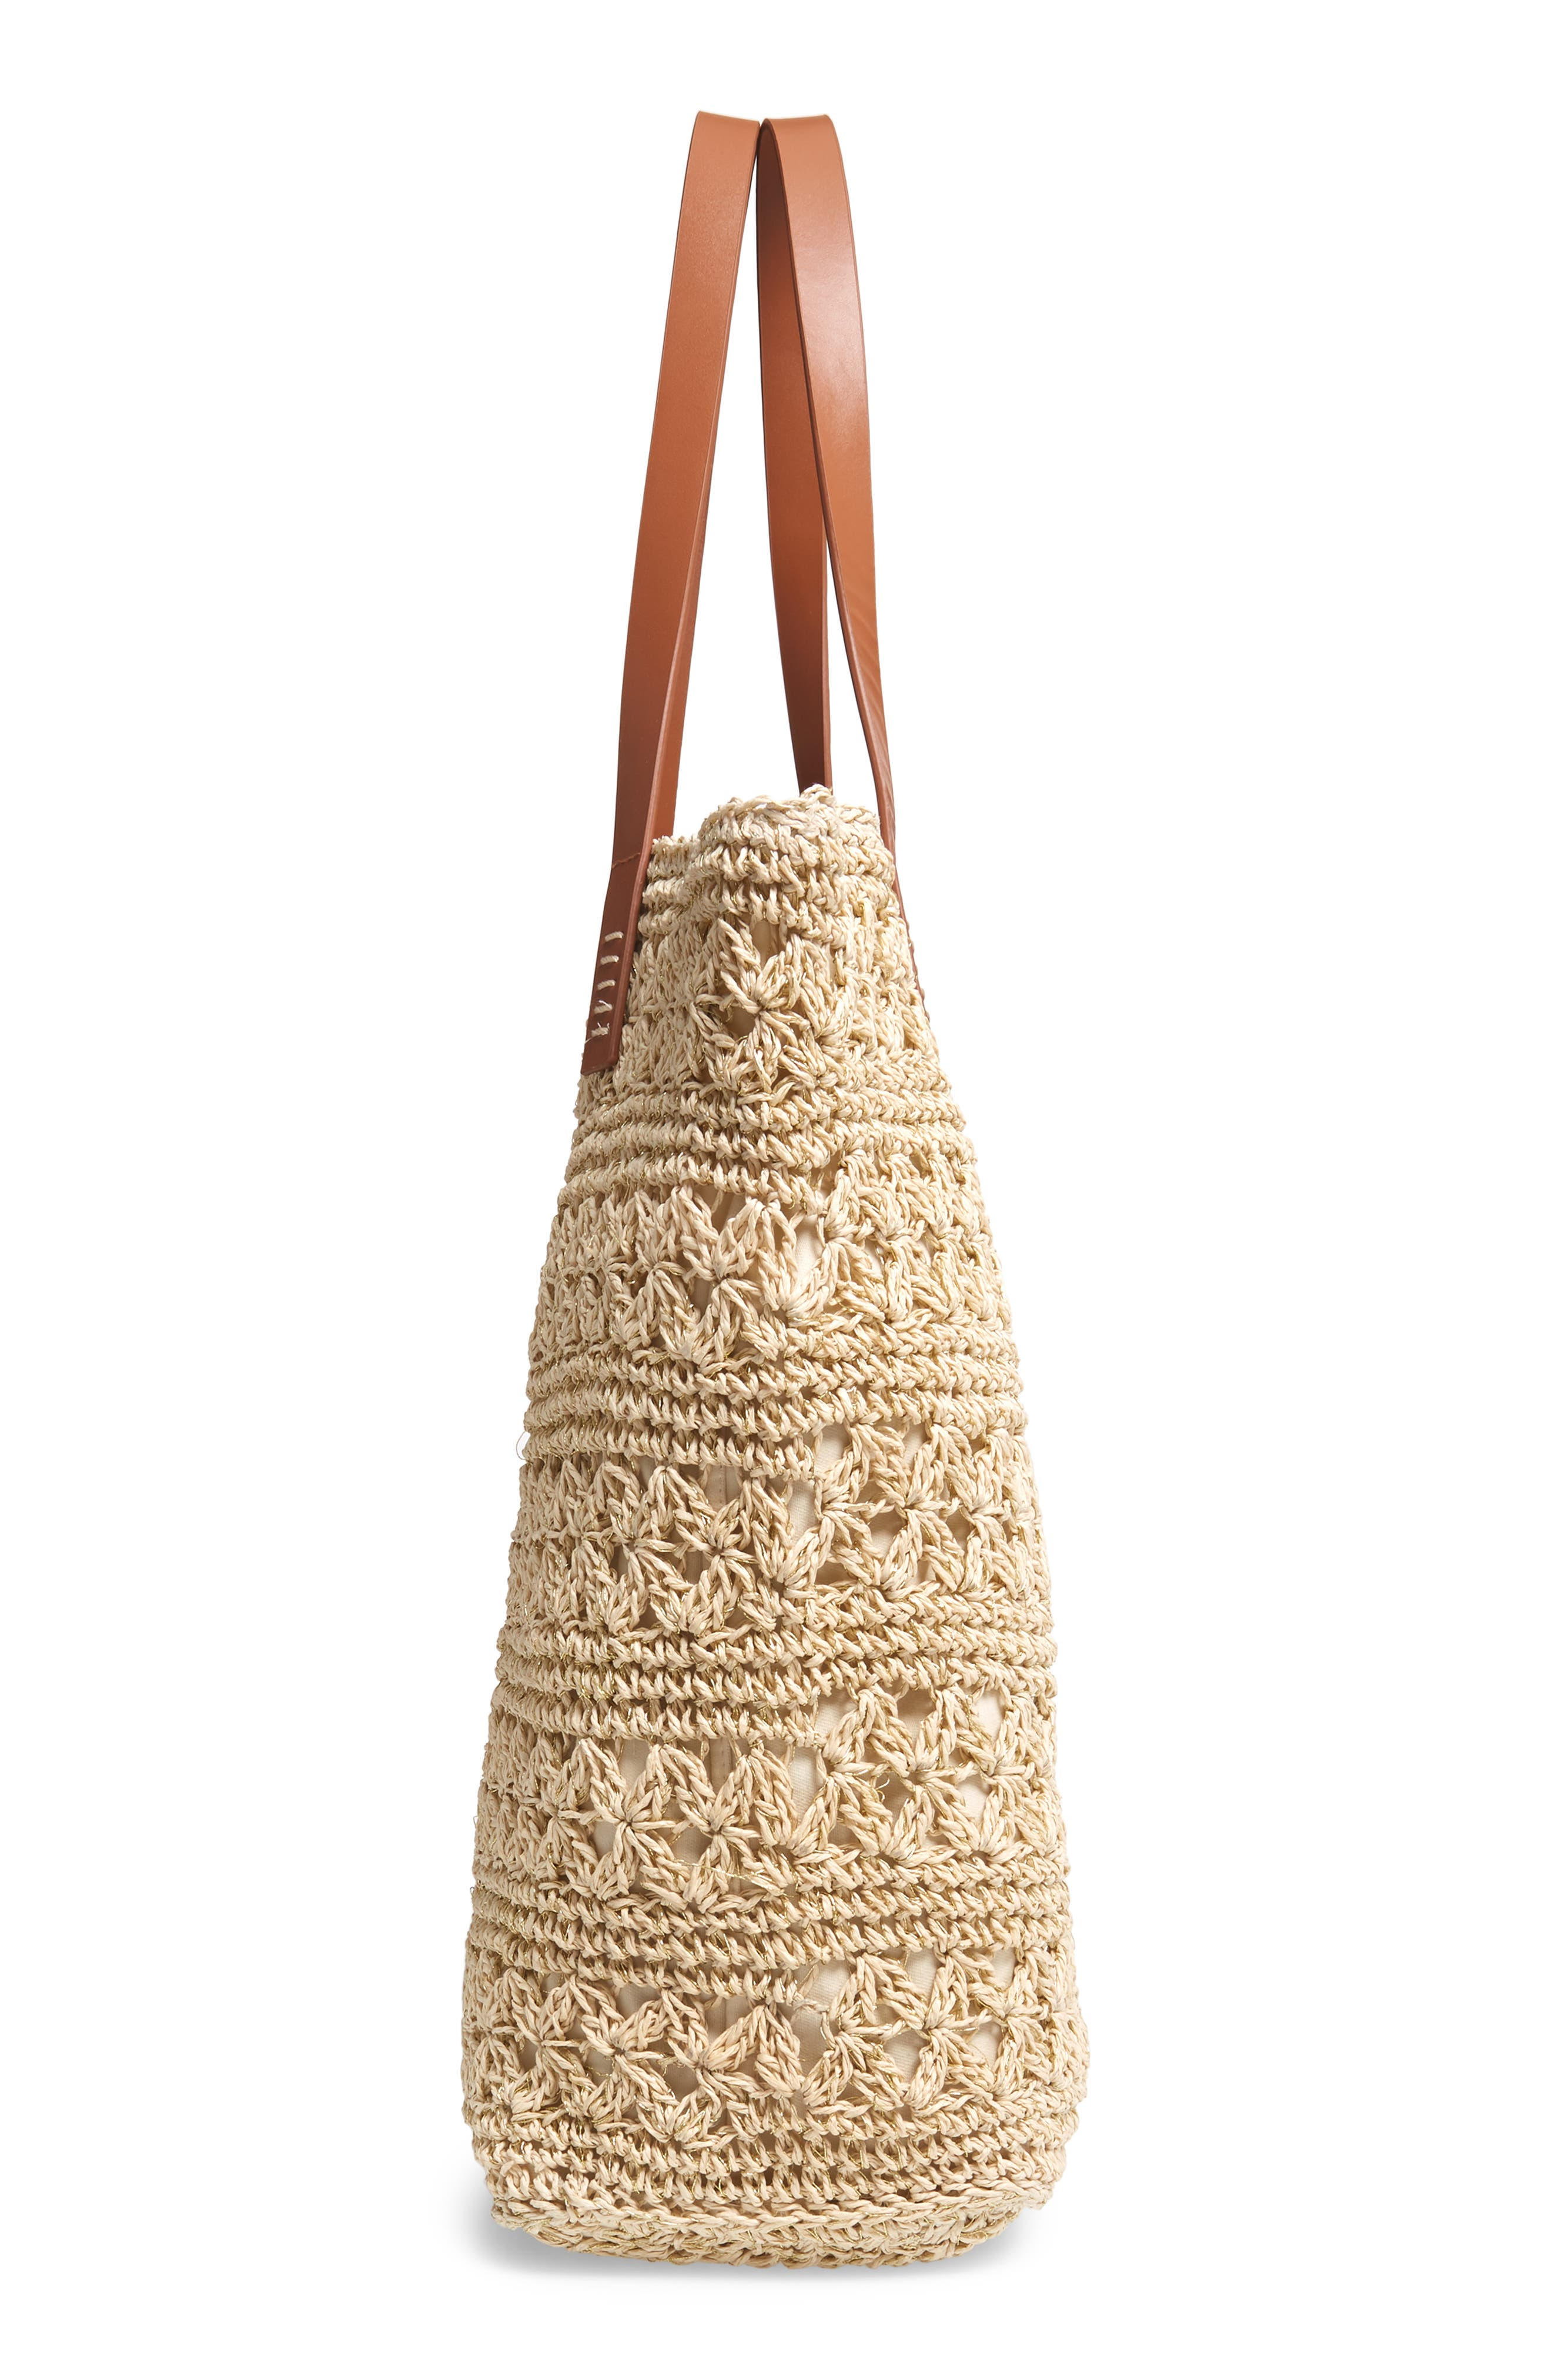 NORDSTROM,                             Packable Woven Raffia Tote,                             Alternate thumbnail 5, color,                             NATURAL